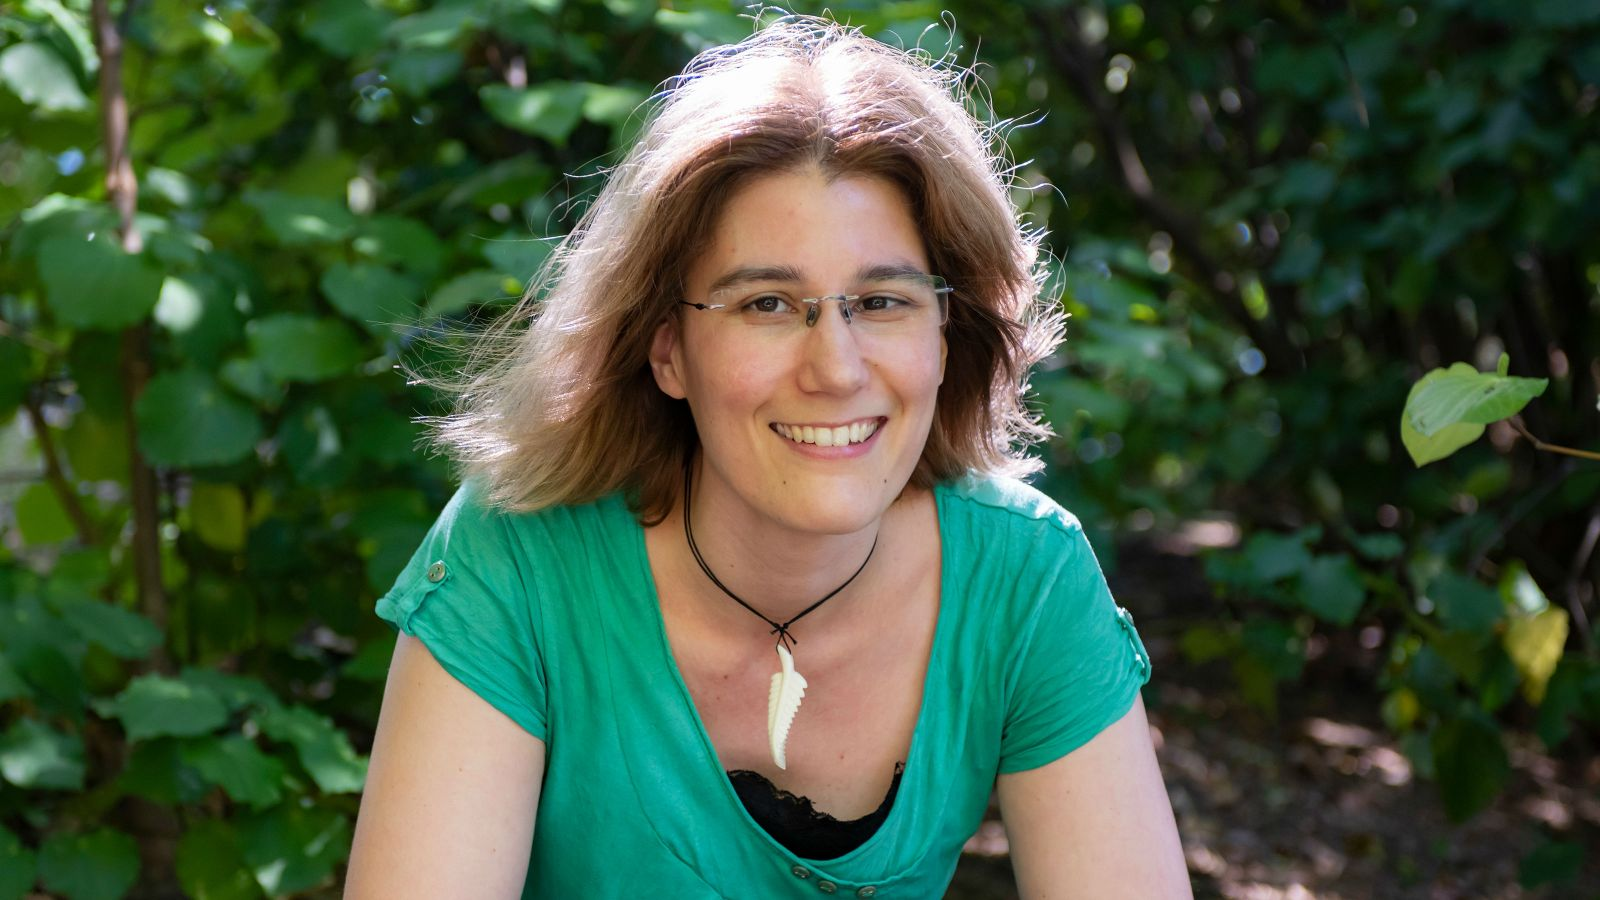 image of PhD candidate Geraldine Smieszhala in a green top standing infront of foliage on campus